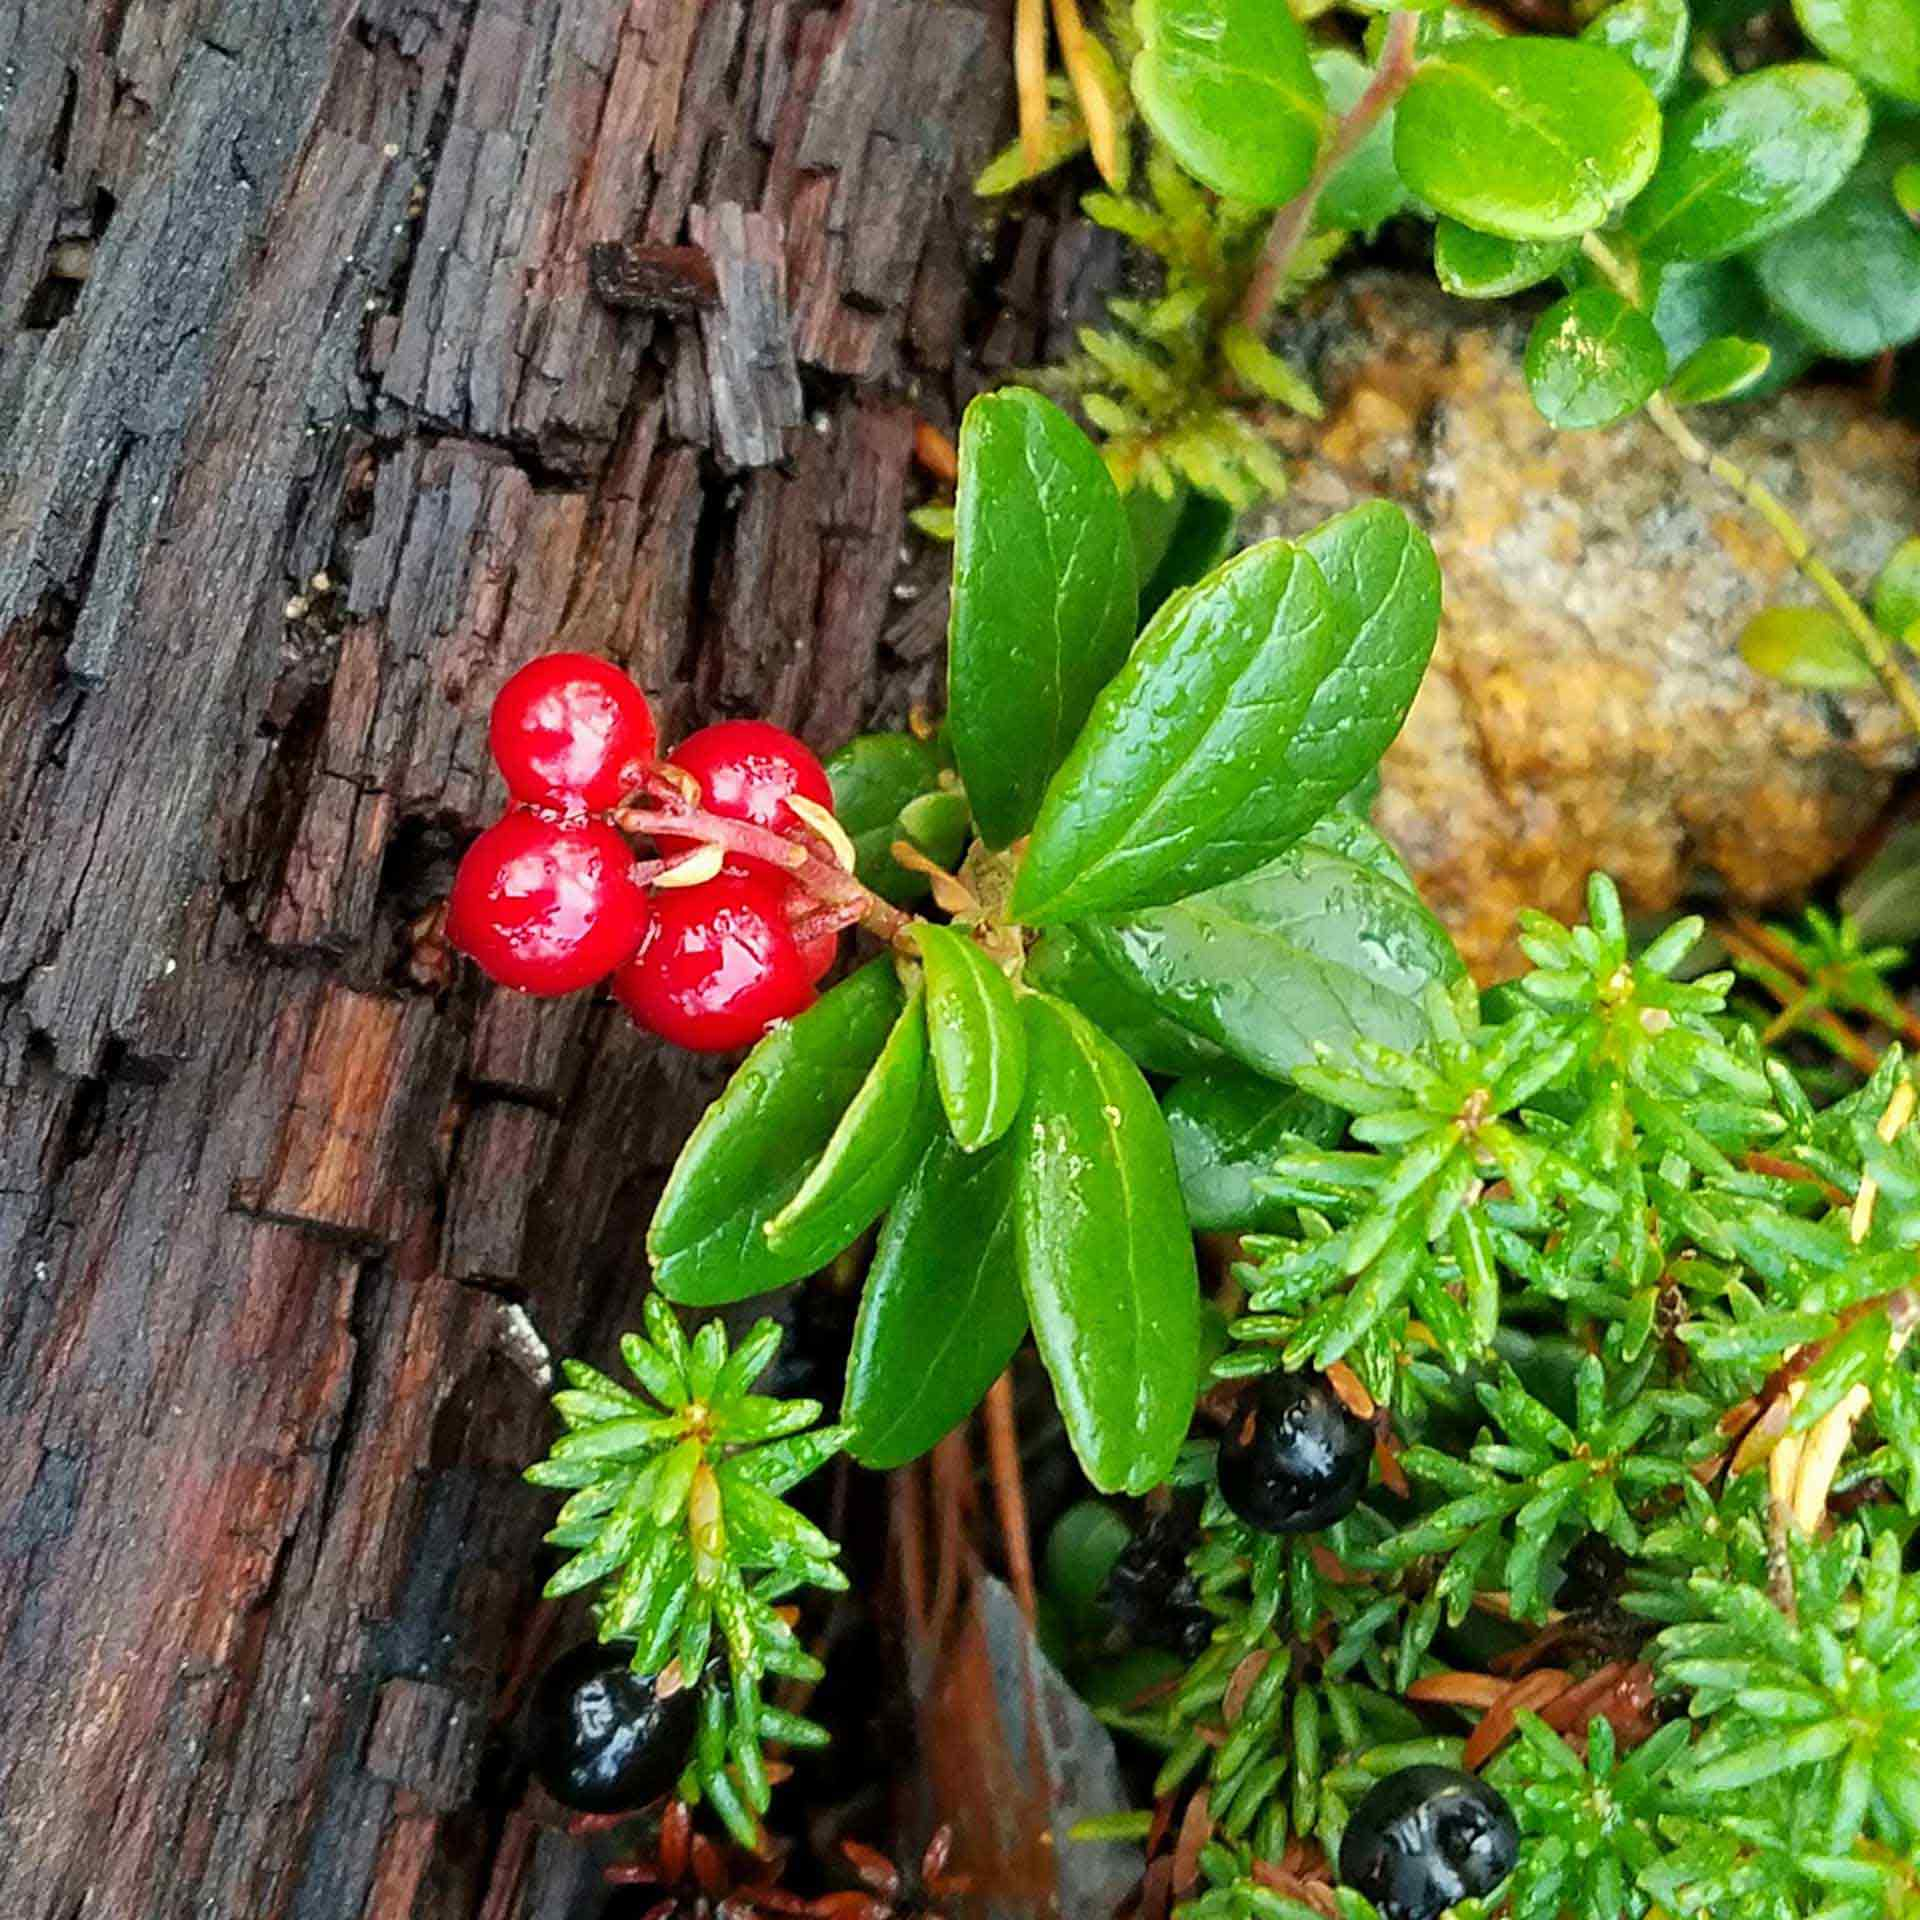 Ligonberries and Bilberries still on the bush covered in rain drops in Lapland, Finland.